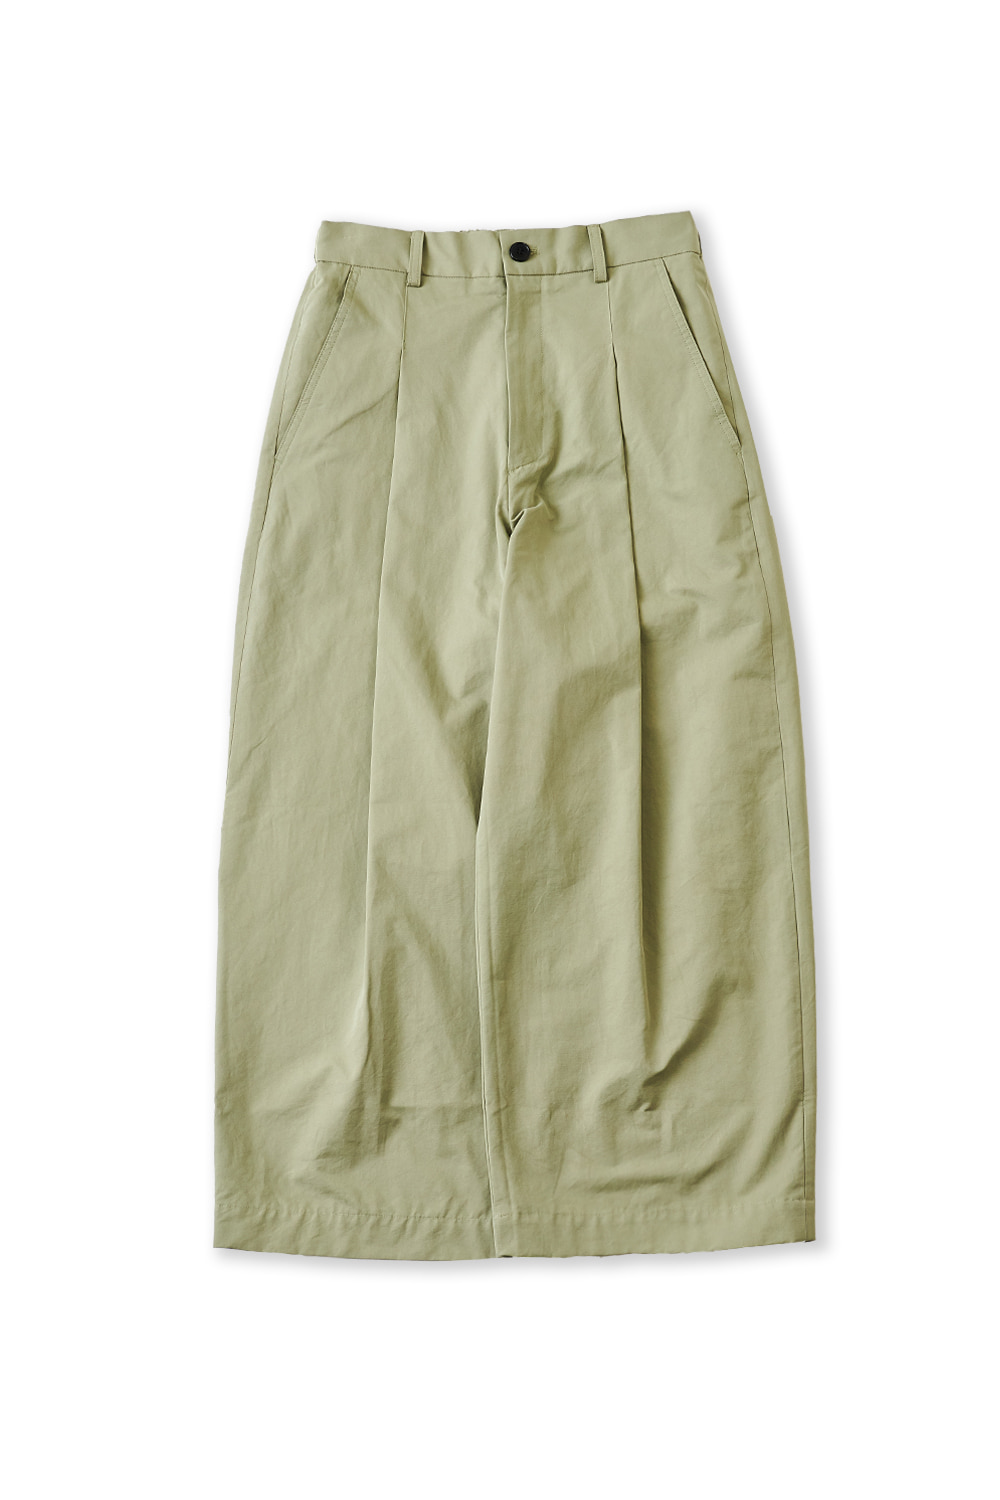 PERENN퍼렌 curved wide trousers_sage green